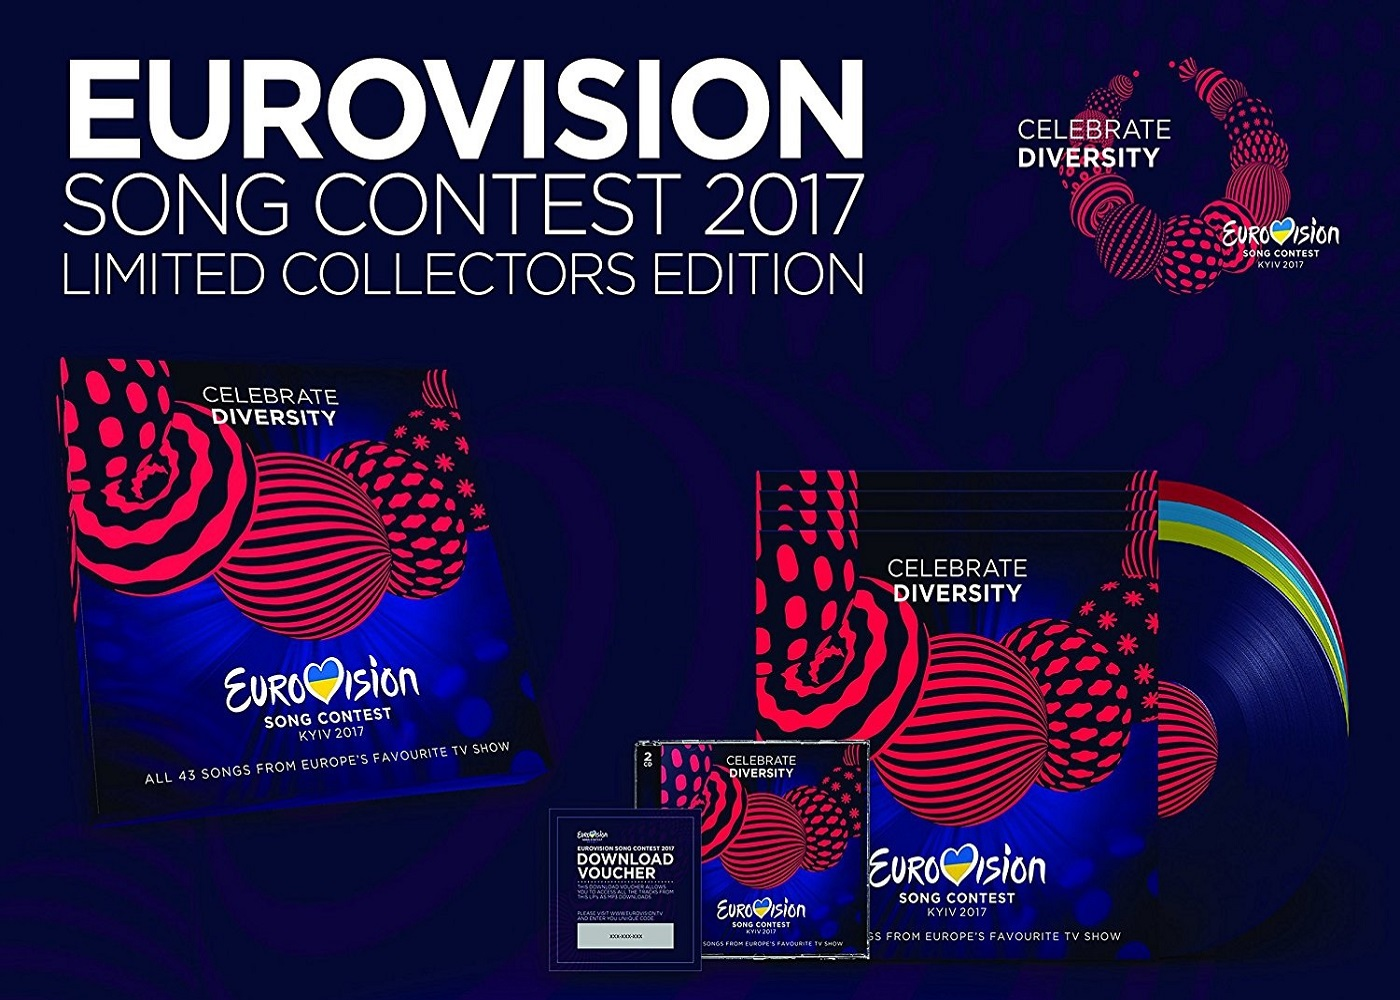 Limited Collector's Edition Vinyl Box Set ESC 2017